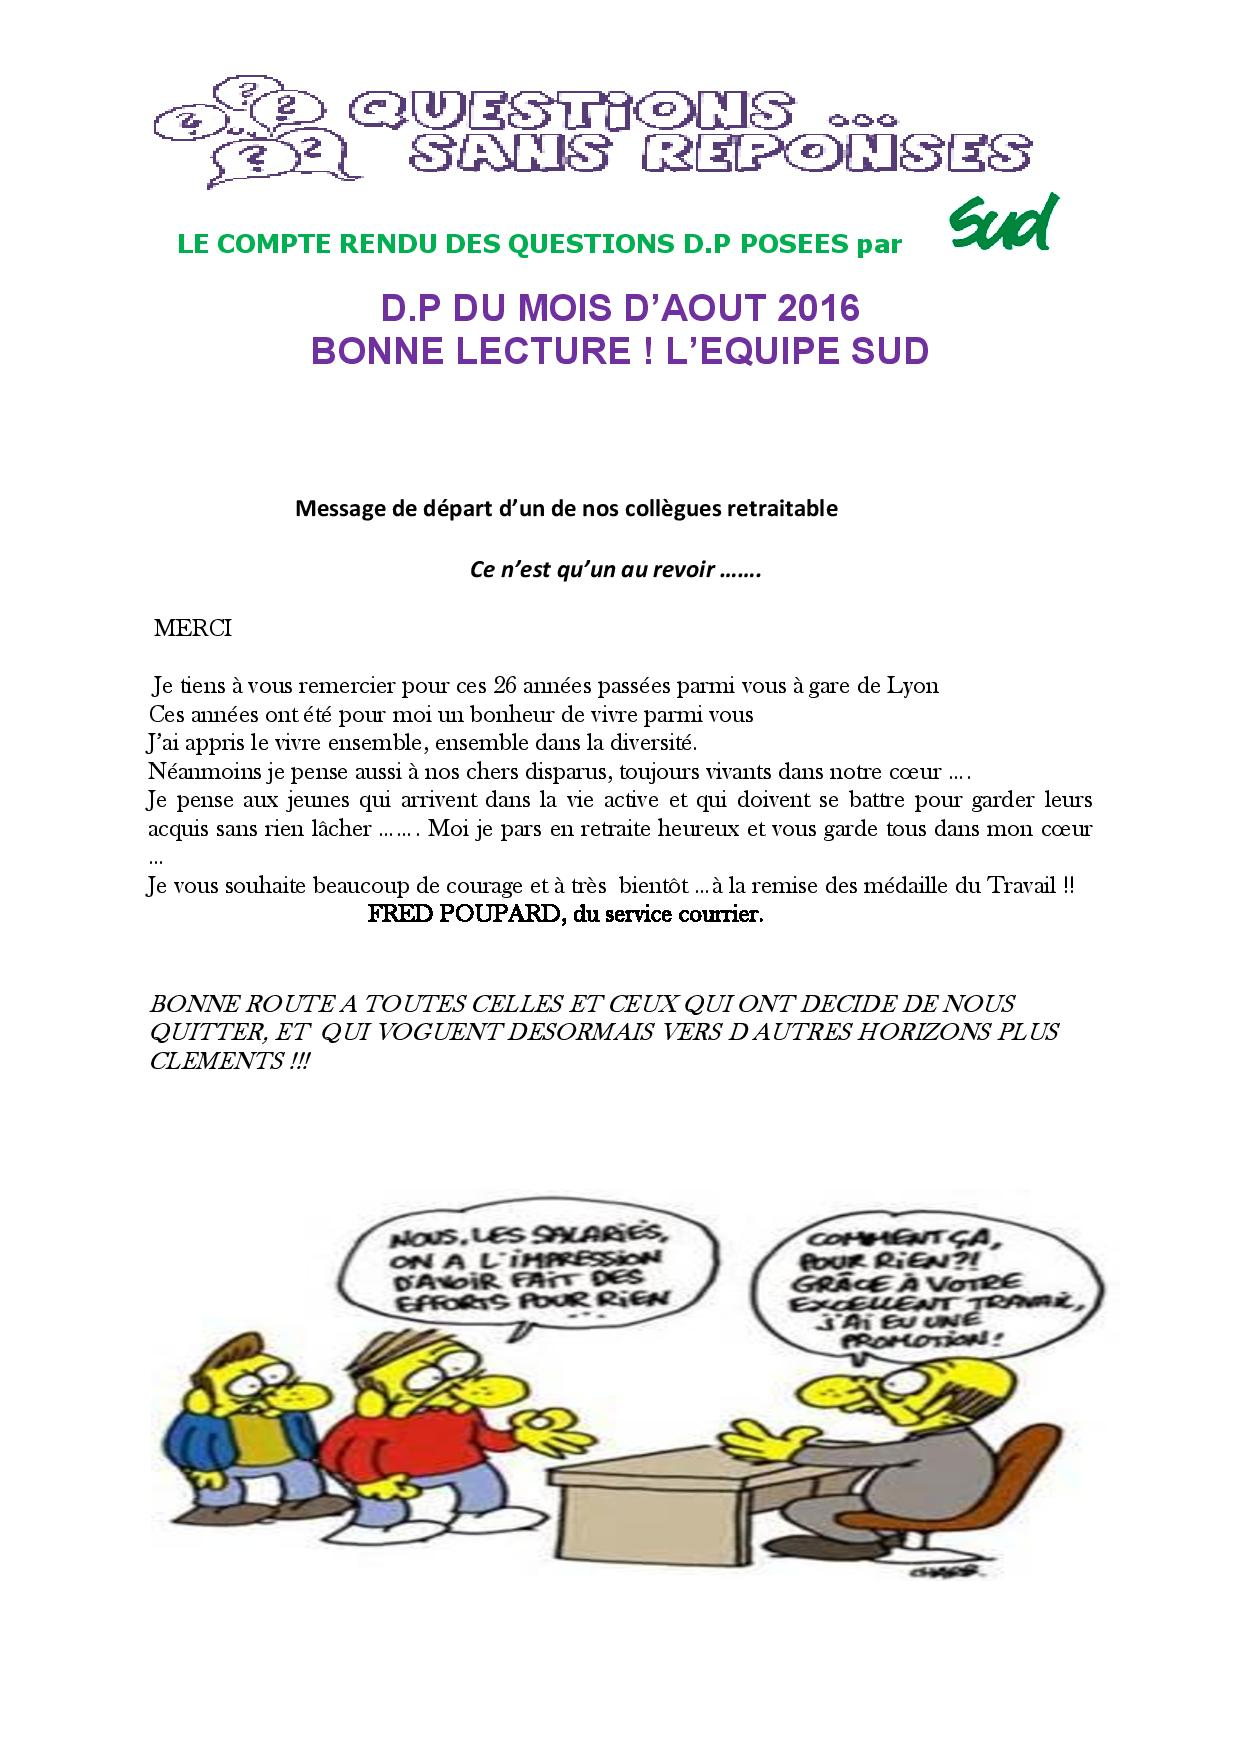 restauration CRDP 08-2016-page-004